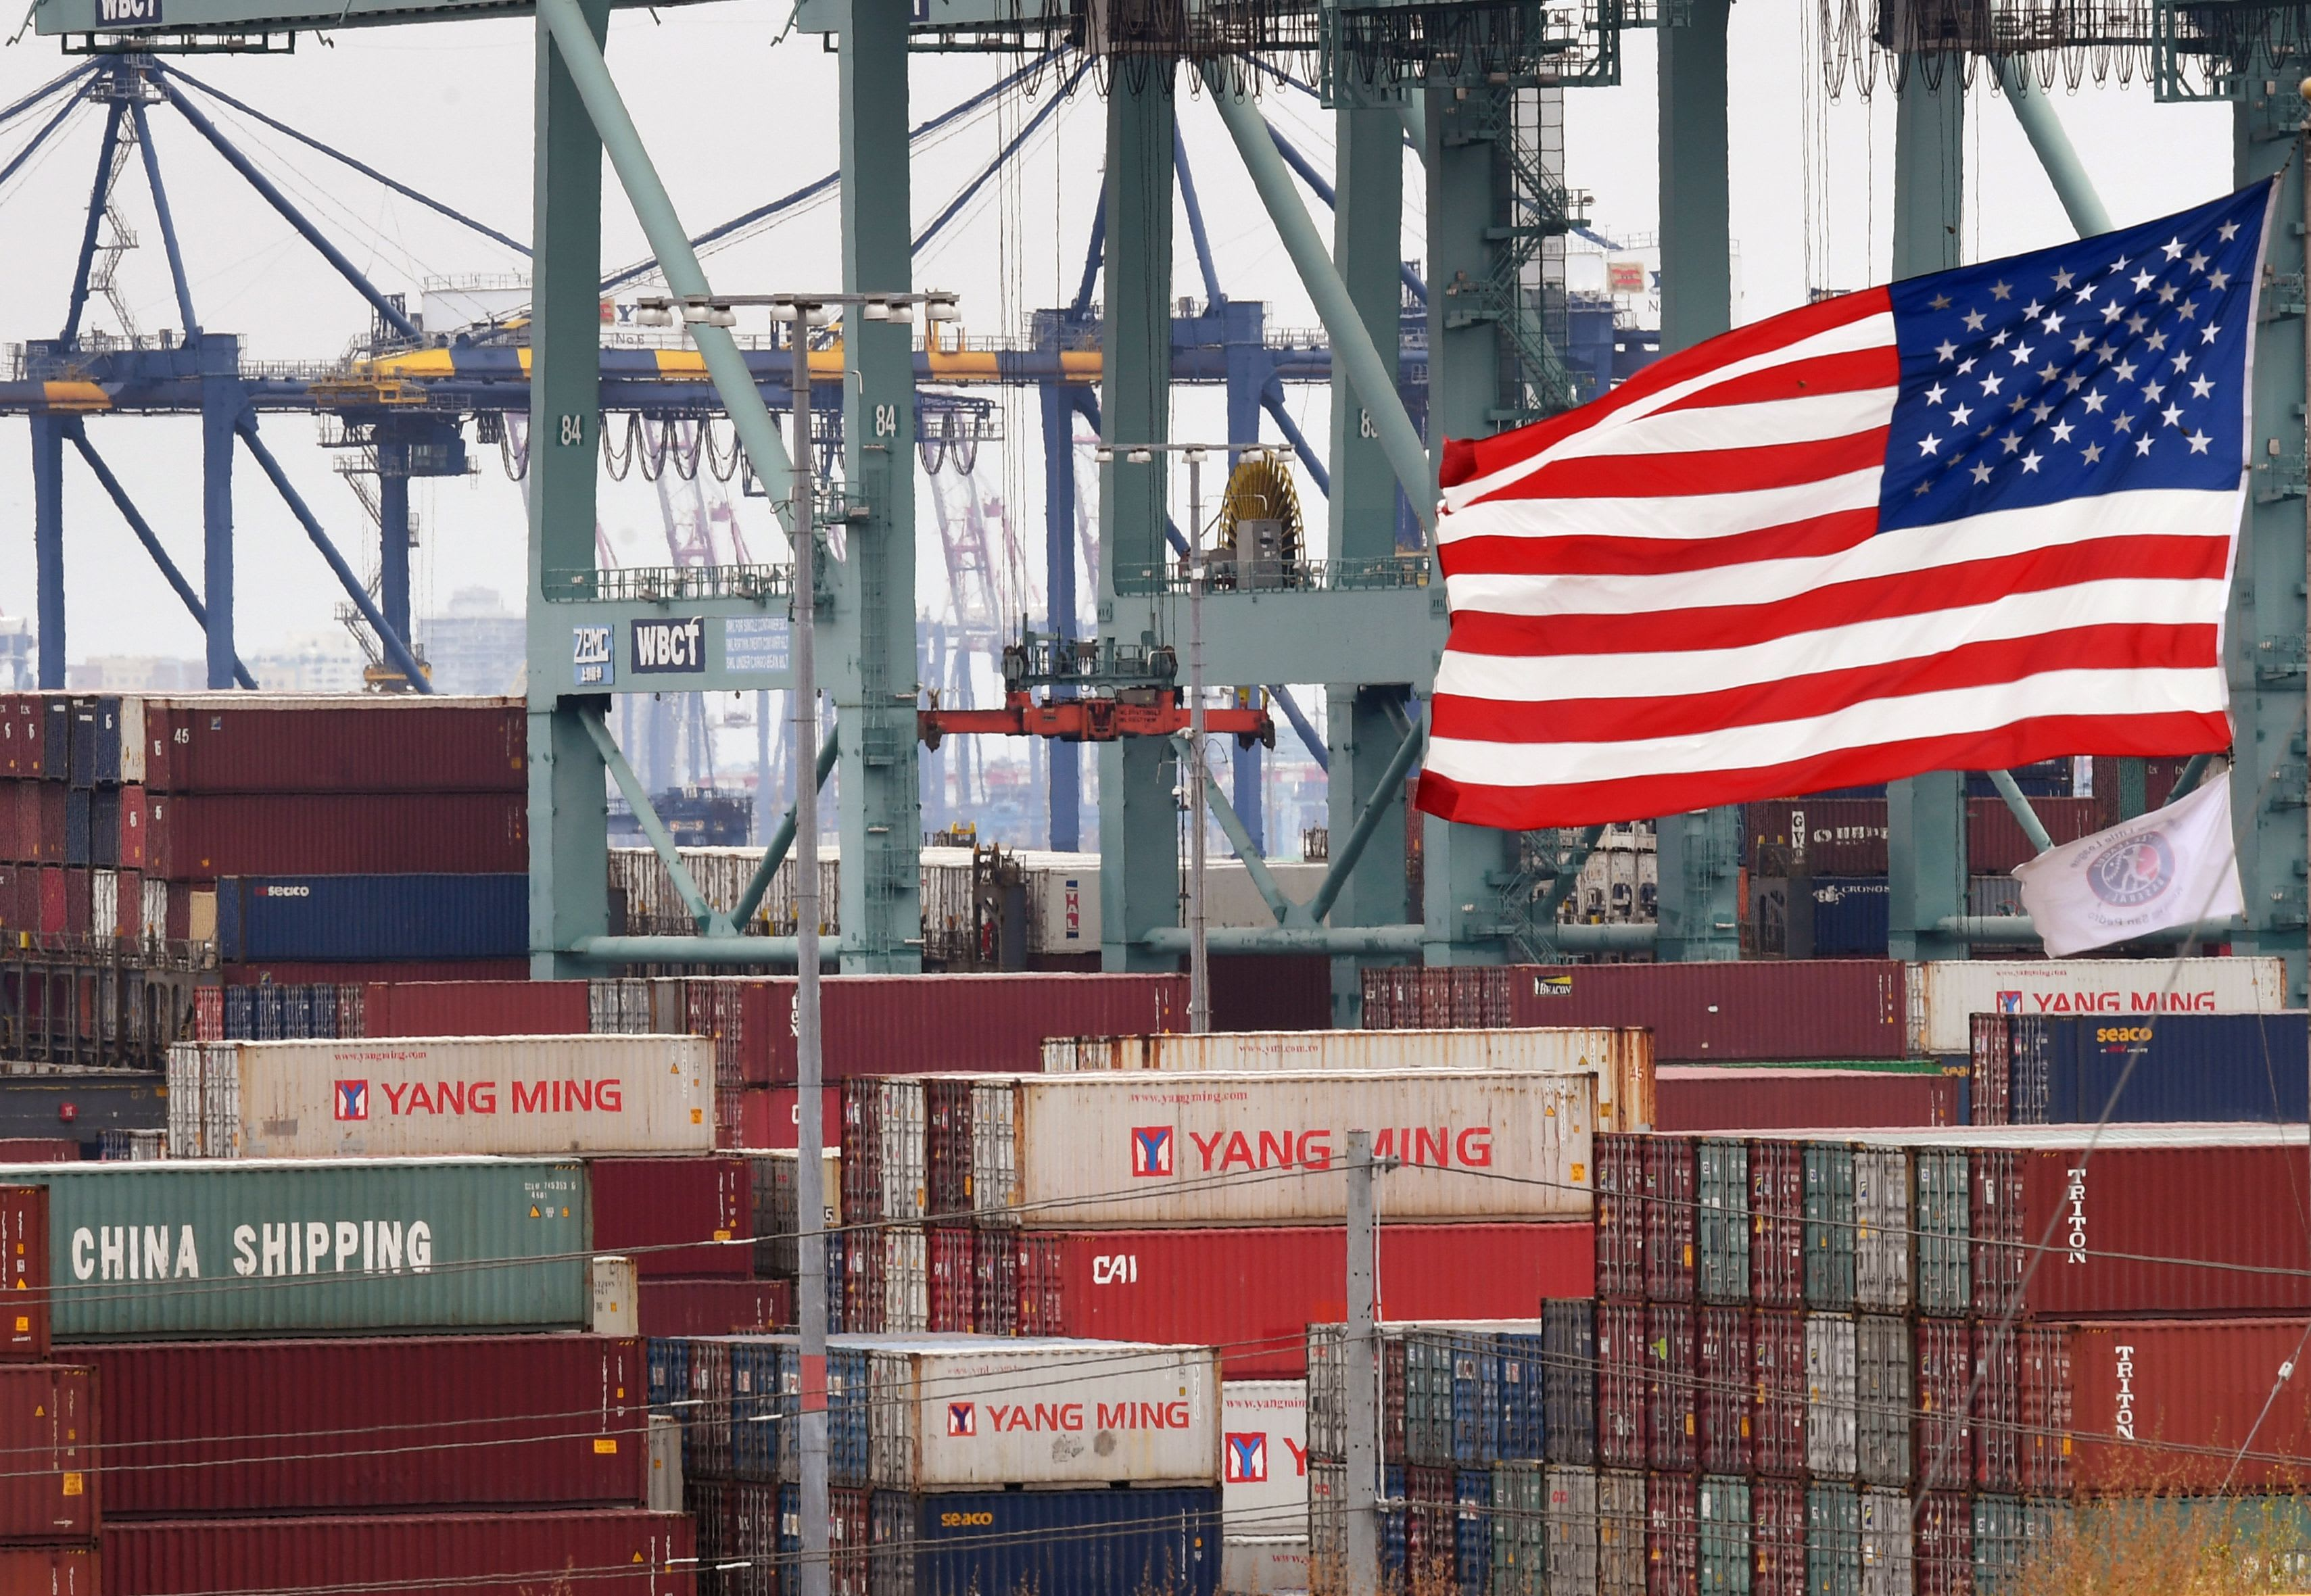 AmCham survey shows tariffs weigh on U.S. businesses in China